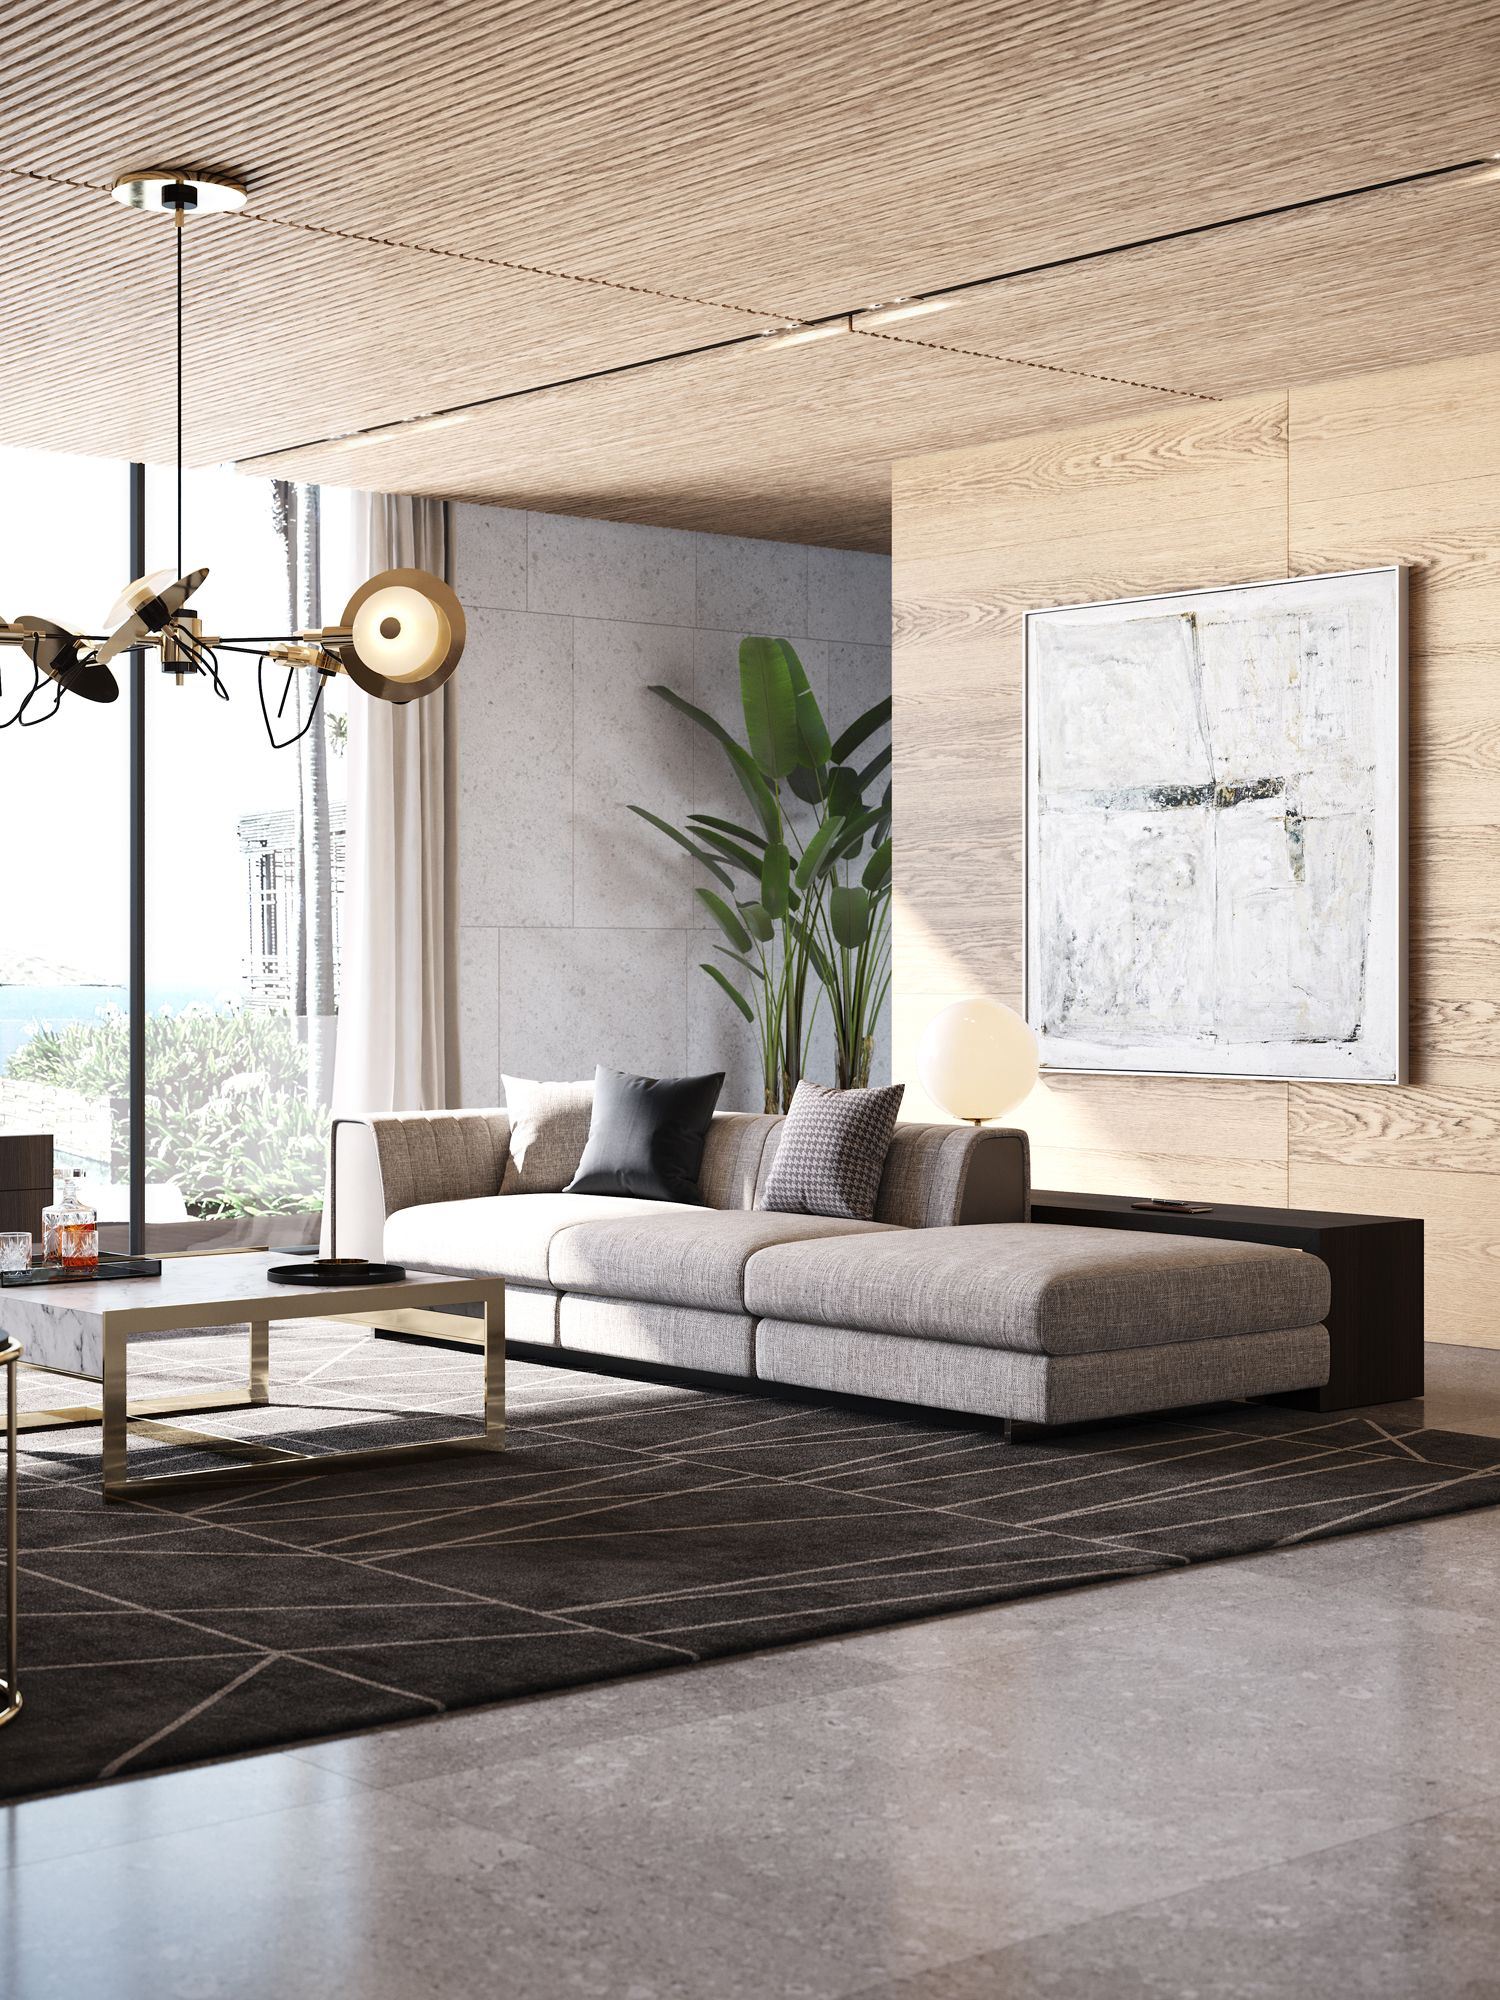 Laskasas Decorate Life Laskasas Com 2019 New Collection